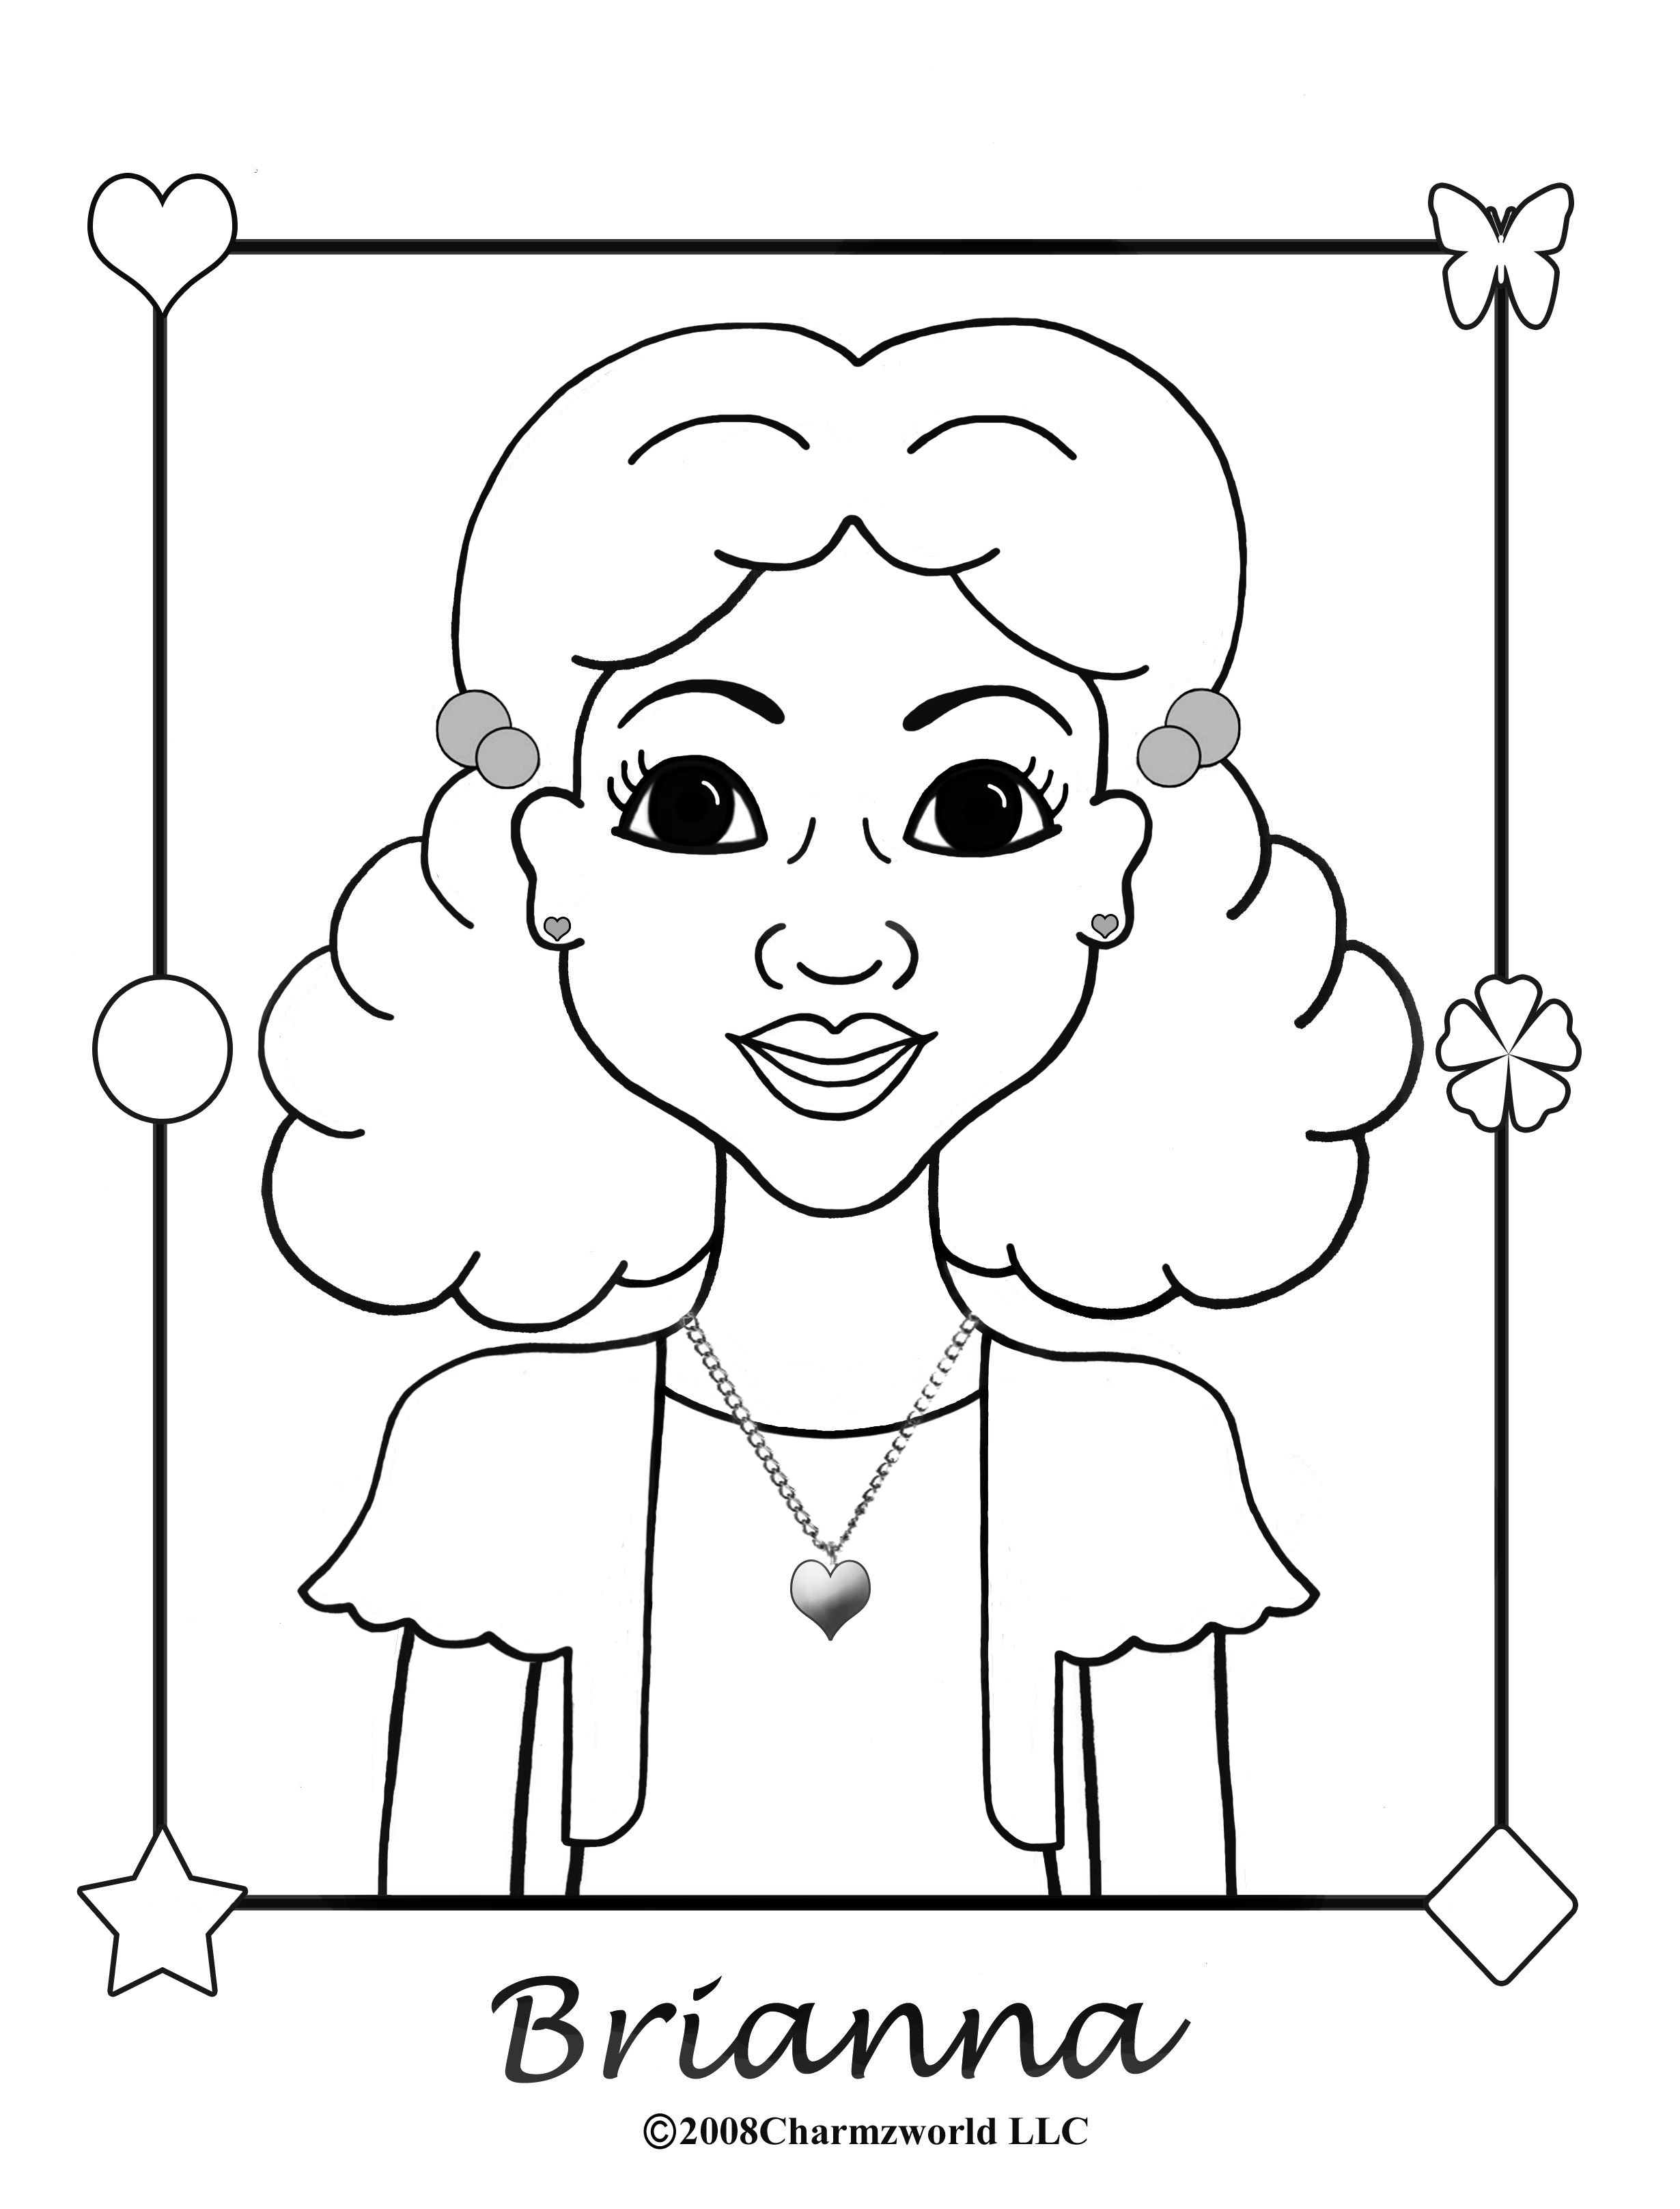 charmz brianna charmz coloring u0026 activity book pinterest